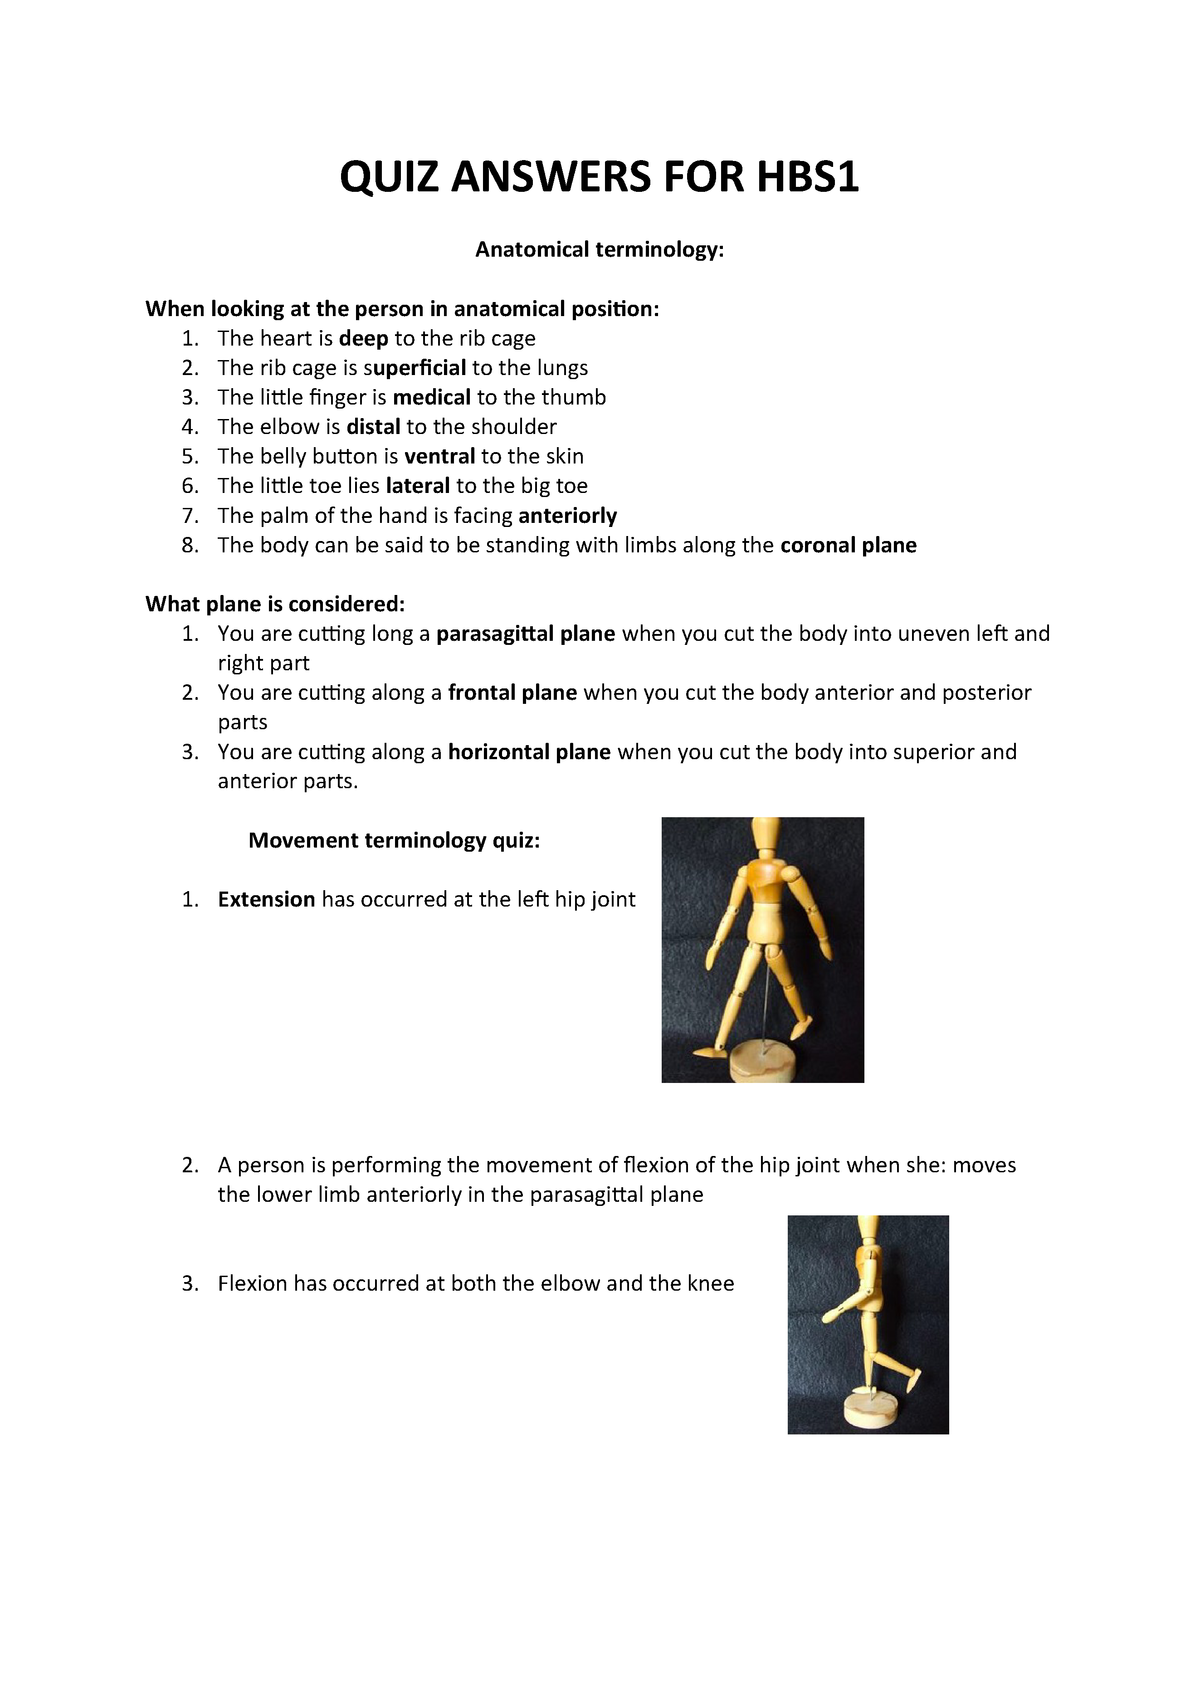 QUIZ Answers FOR HBS1 - online quizes - HBS1HBB: Human Biosciences B